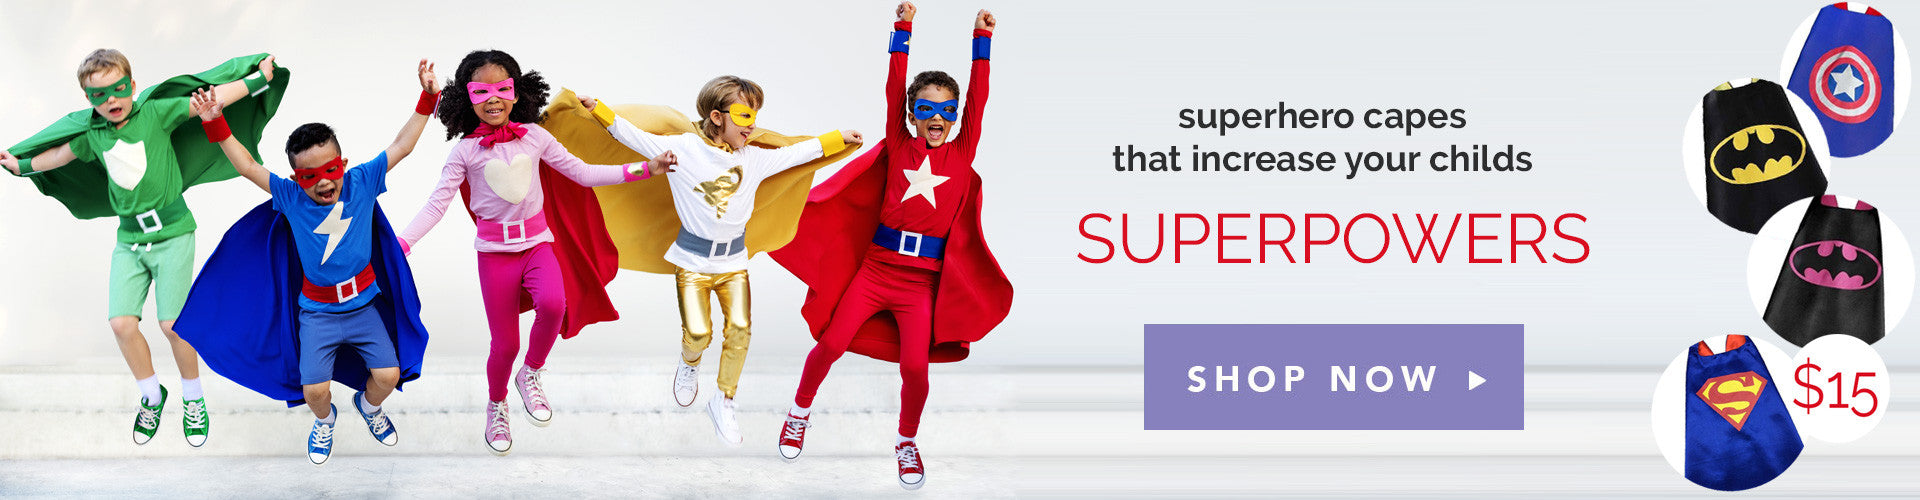 Superhero Capes for Kids at Unde $15